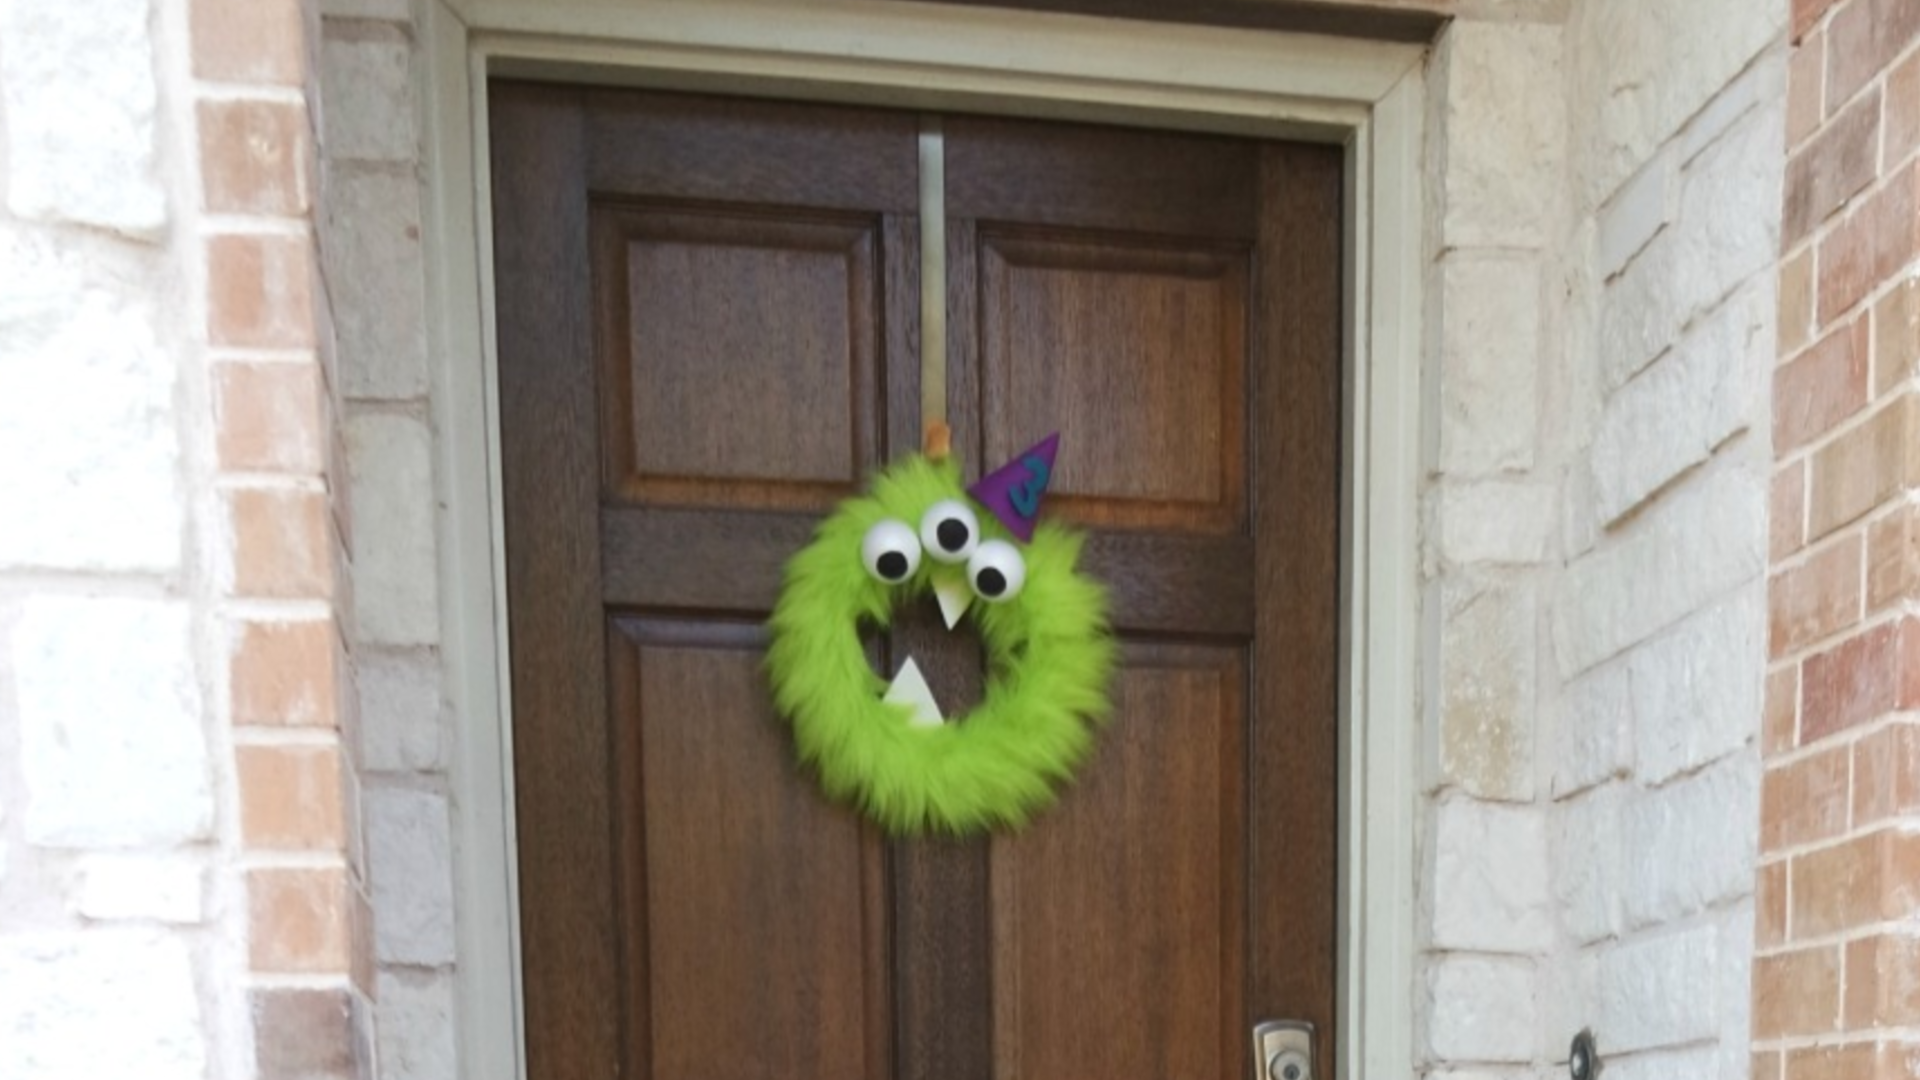 Furry Wreath Monster Door Decoration